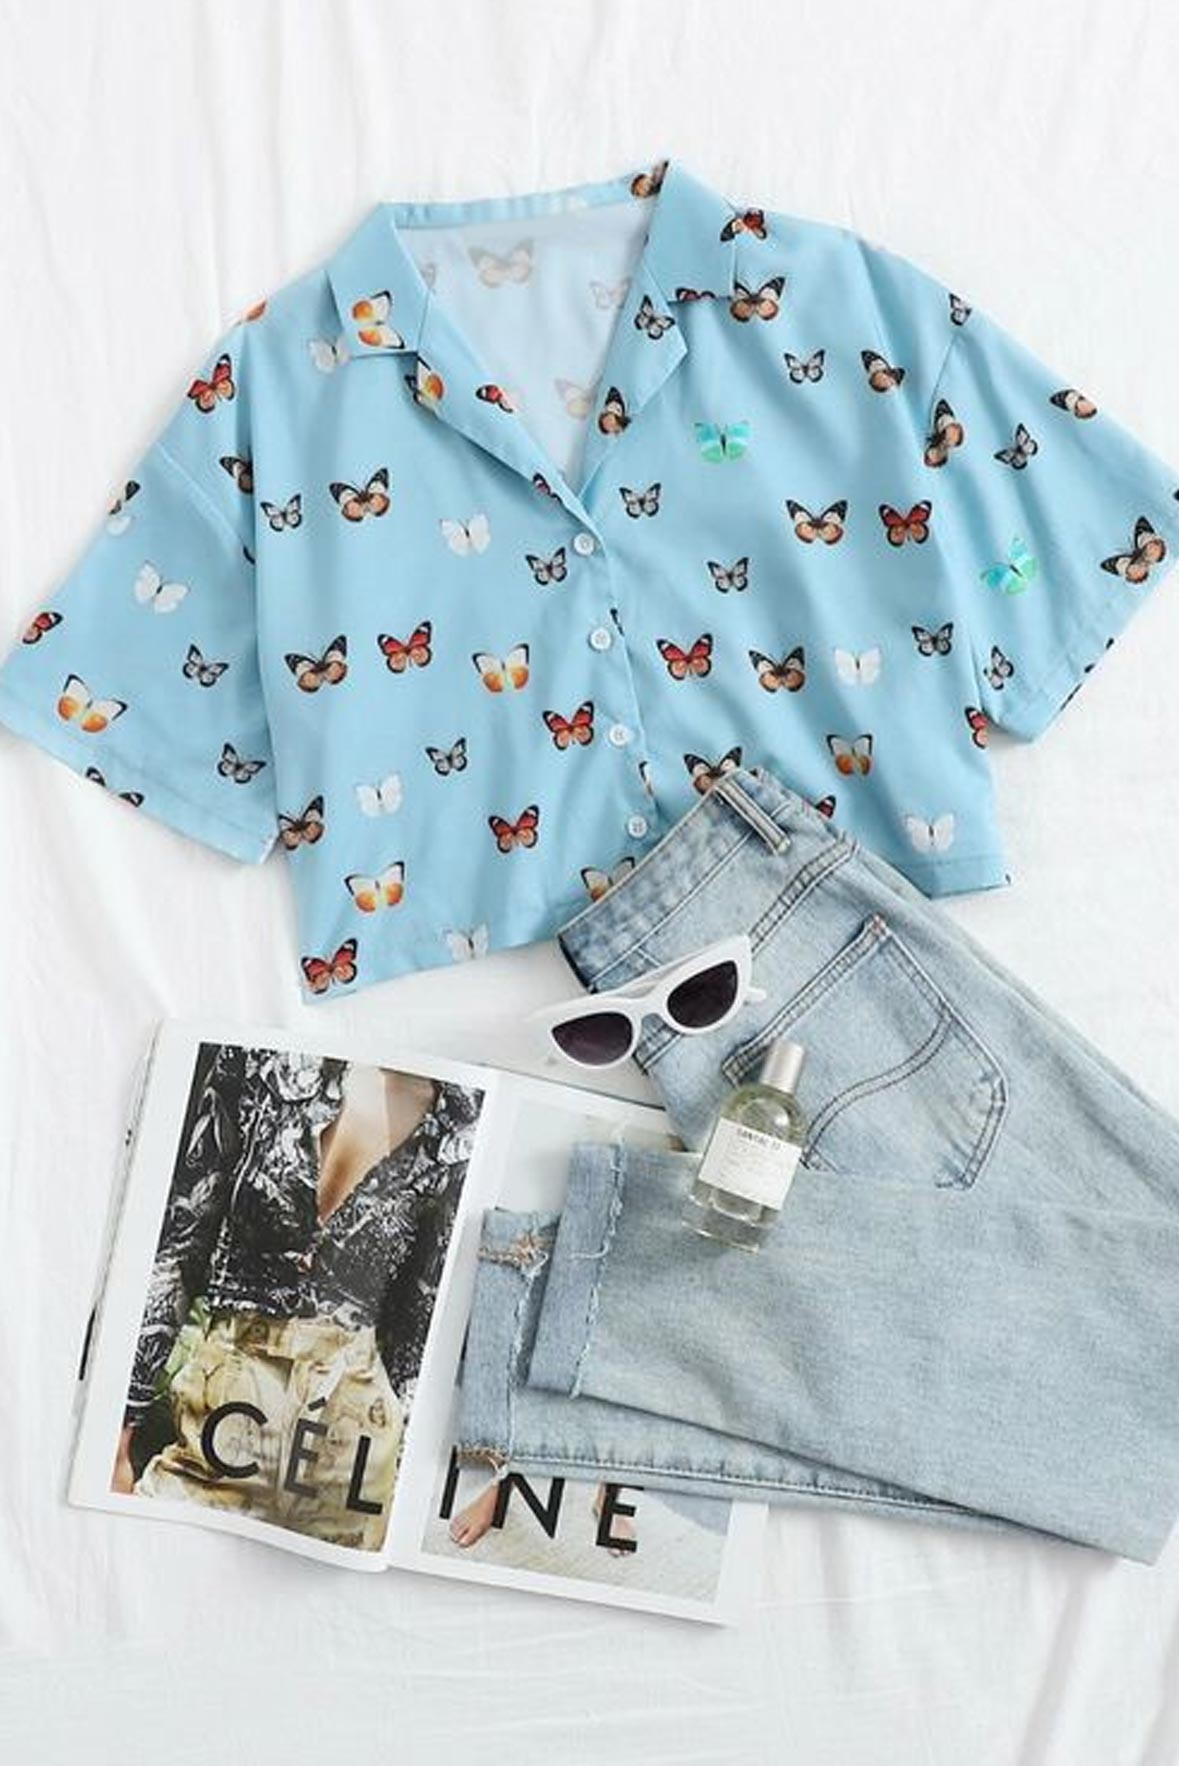 Digitally Printed Happy Go Lucky Shirt Style Crop Top